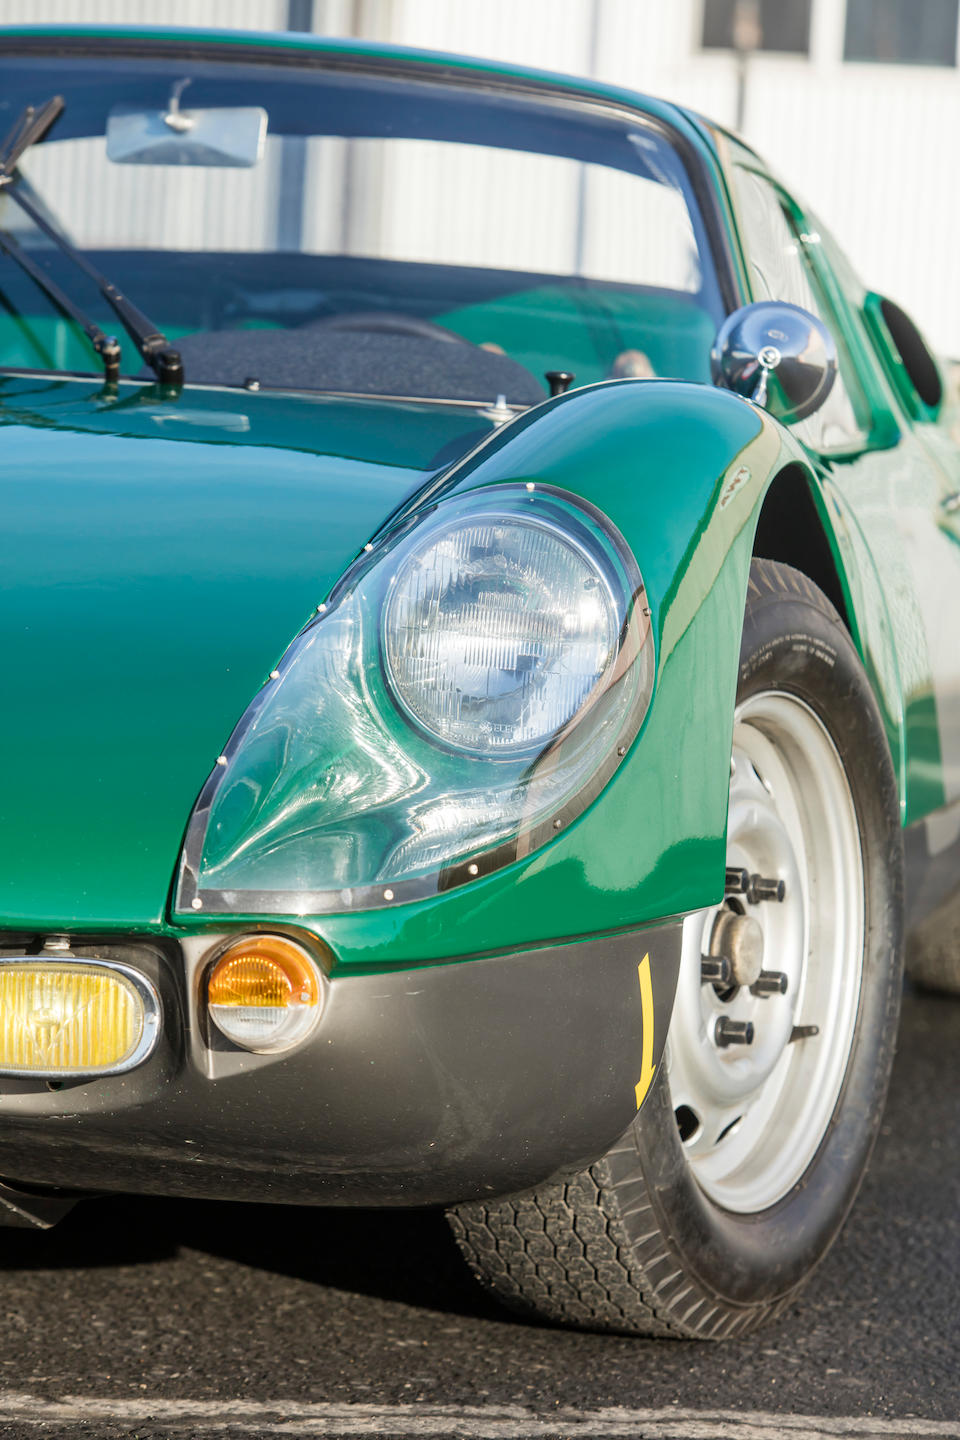 <b>1964 Porsche 904 GTS</b><br />Chassis no. 904 012<br />Engine no. 14264 (see text)